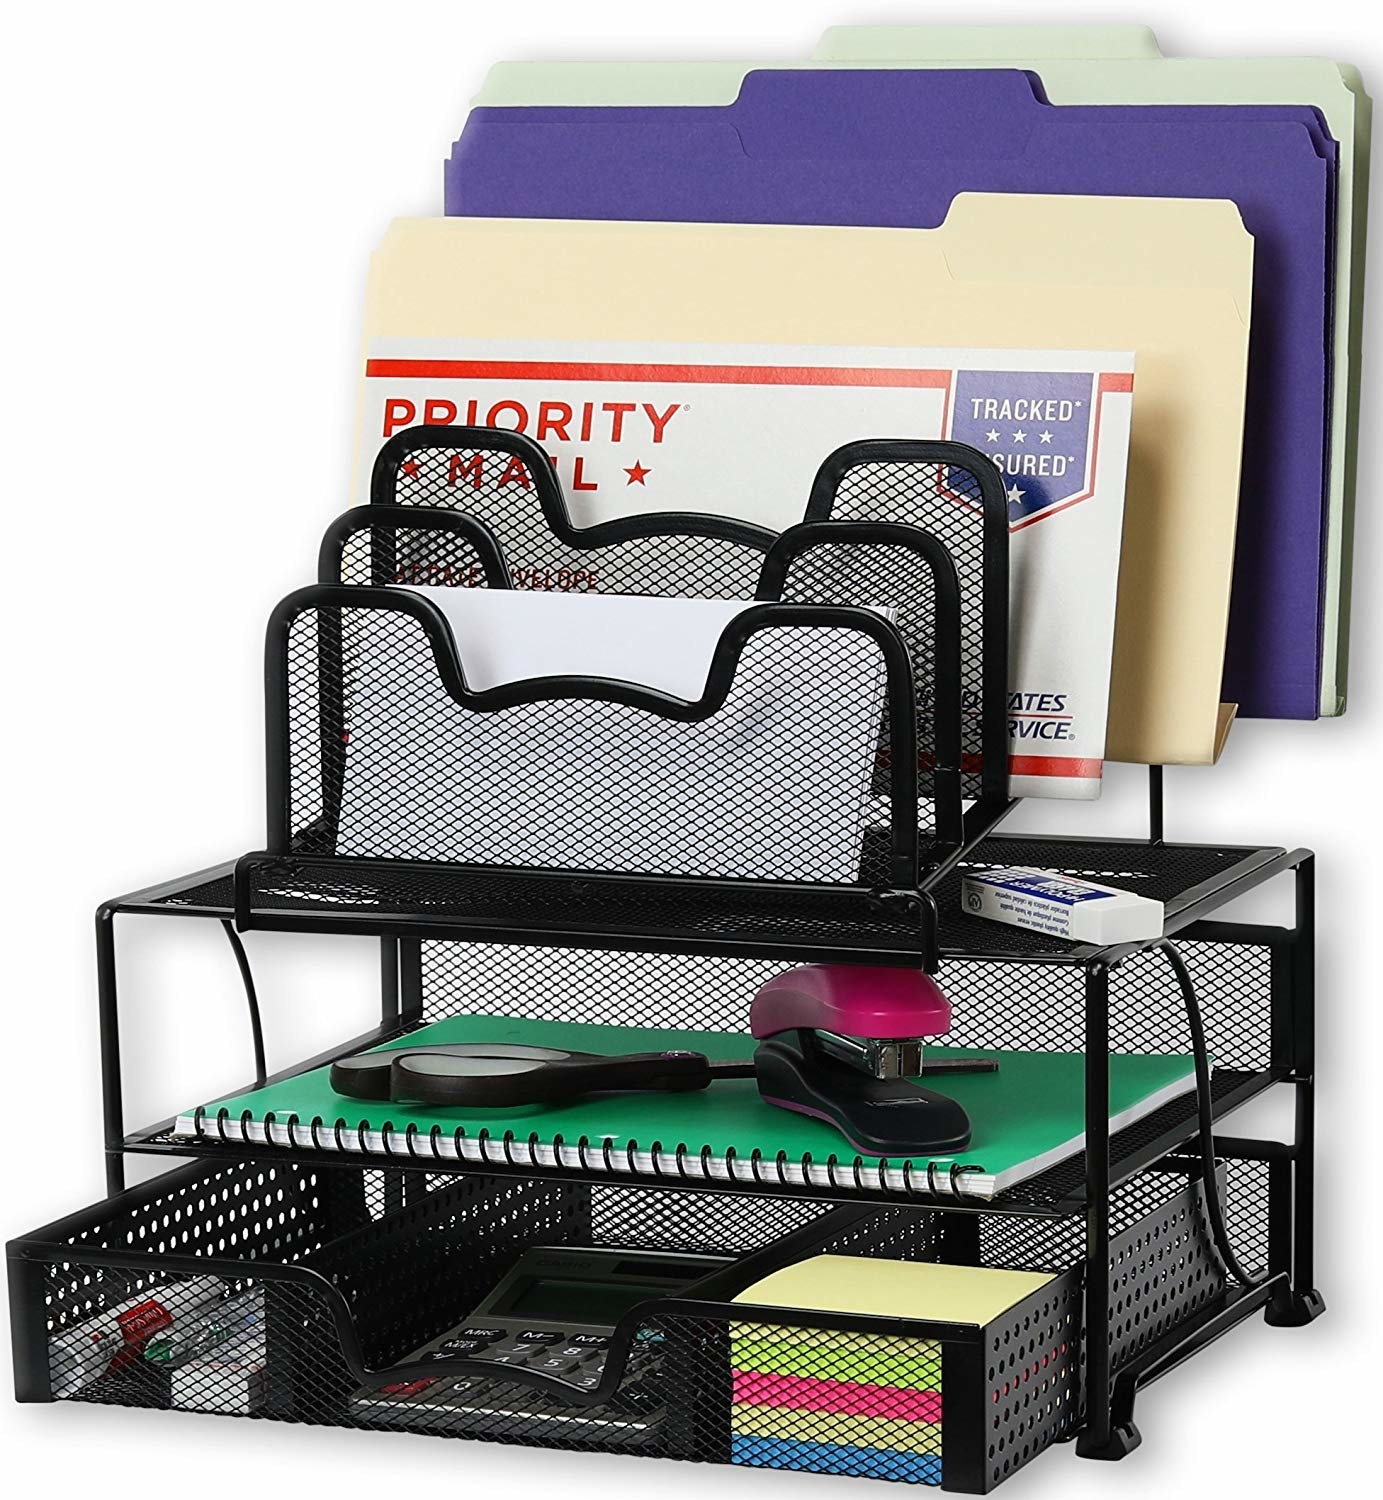 the black metal organizer with a drawer with three compartments, a shelf, and letter organizer